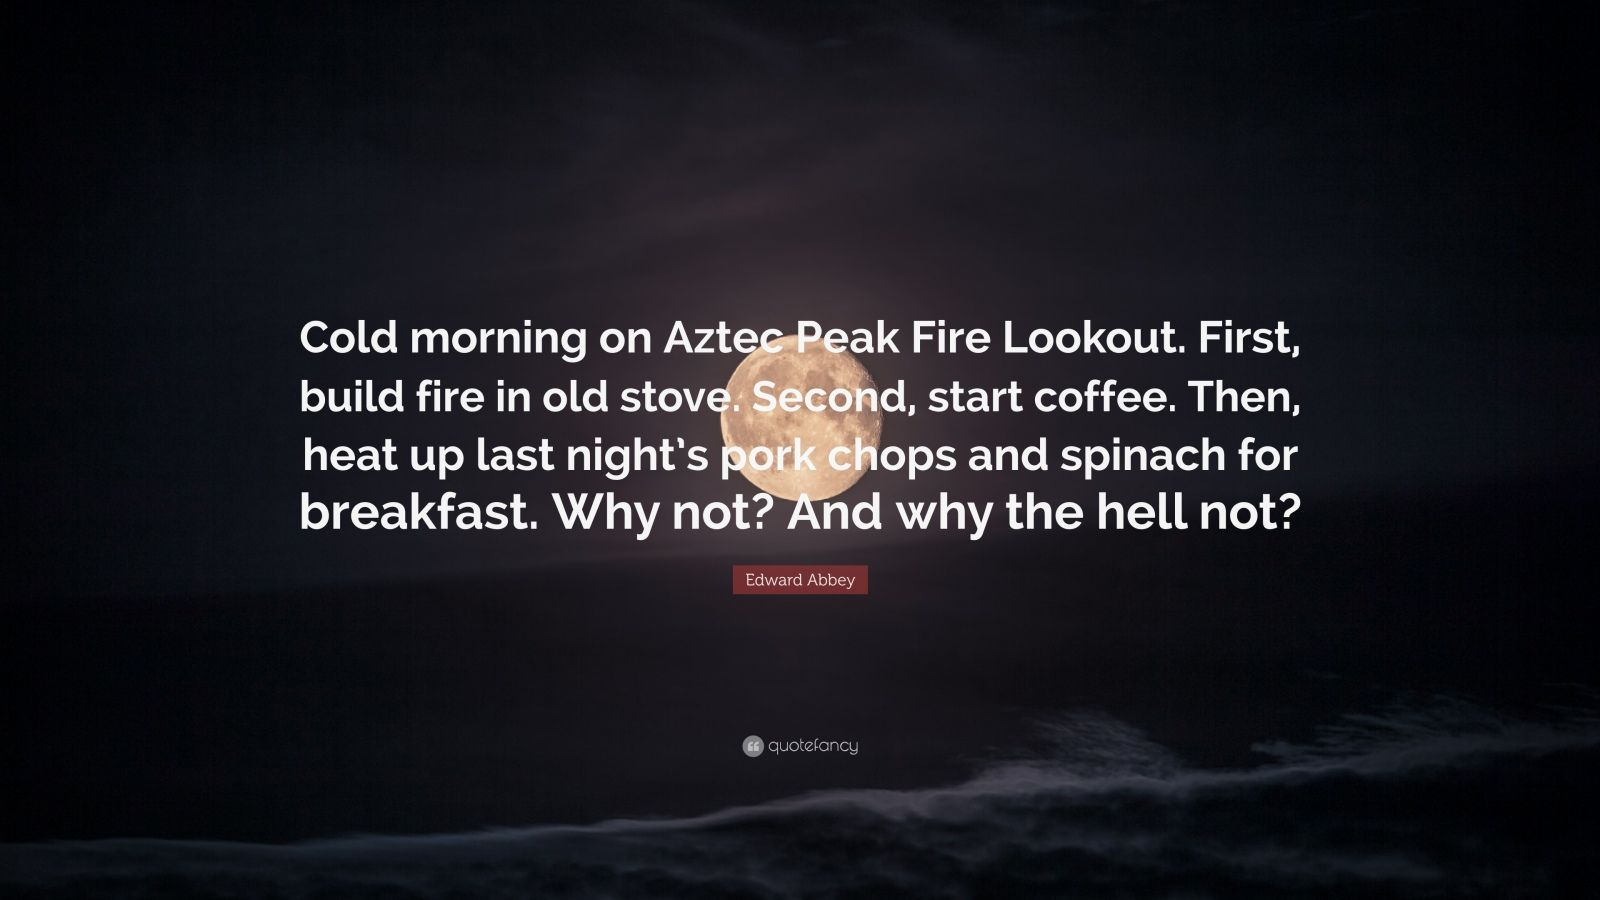 """Edward Abbey Quote: """"Cold morning on Aztec Peak Fire Lookout. First, build fire in old stove. Second, start coffee. Then, heat up last night's pork chops and spinach for breakfast. Why not? And why the hell not?"""""""